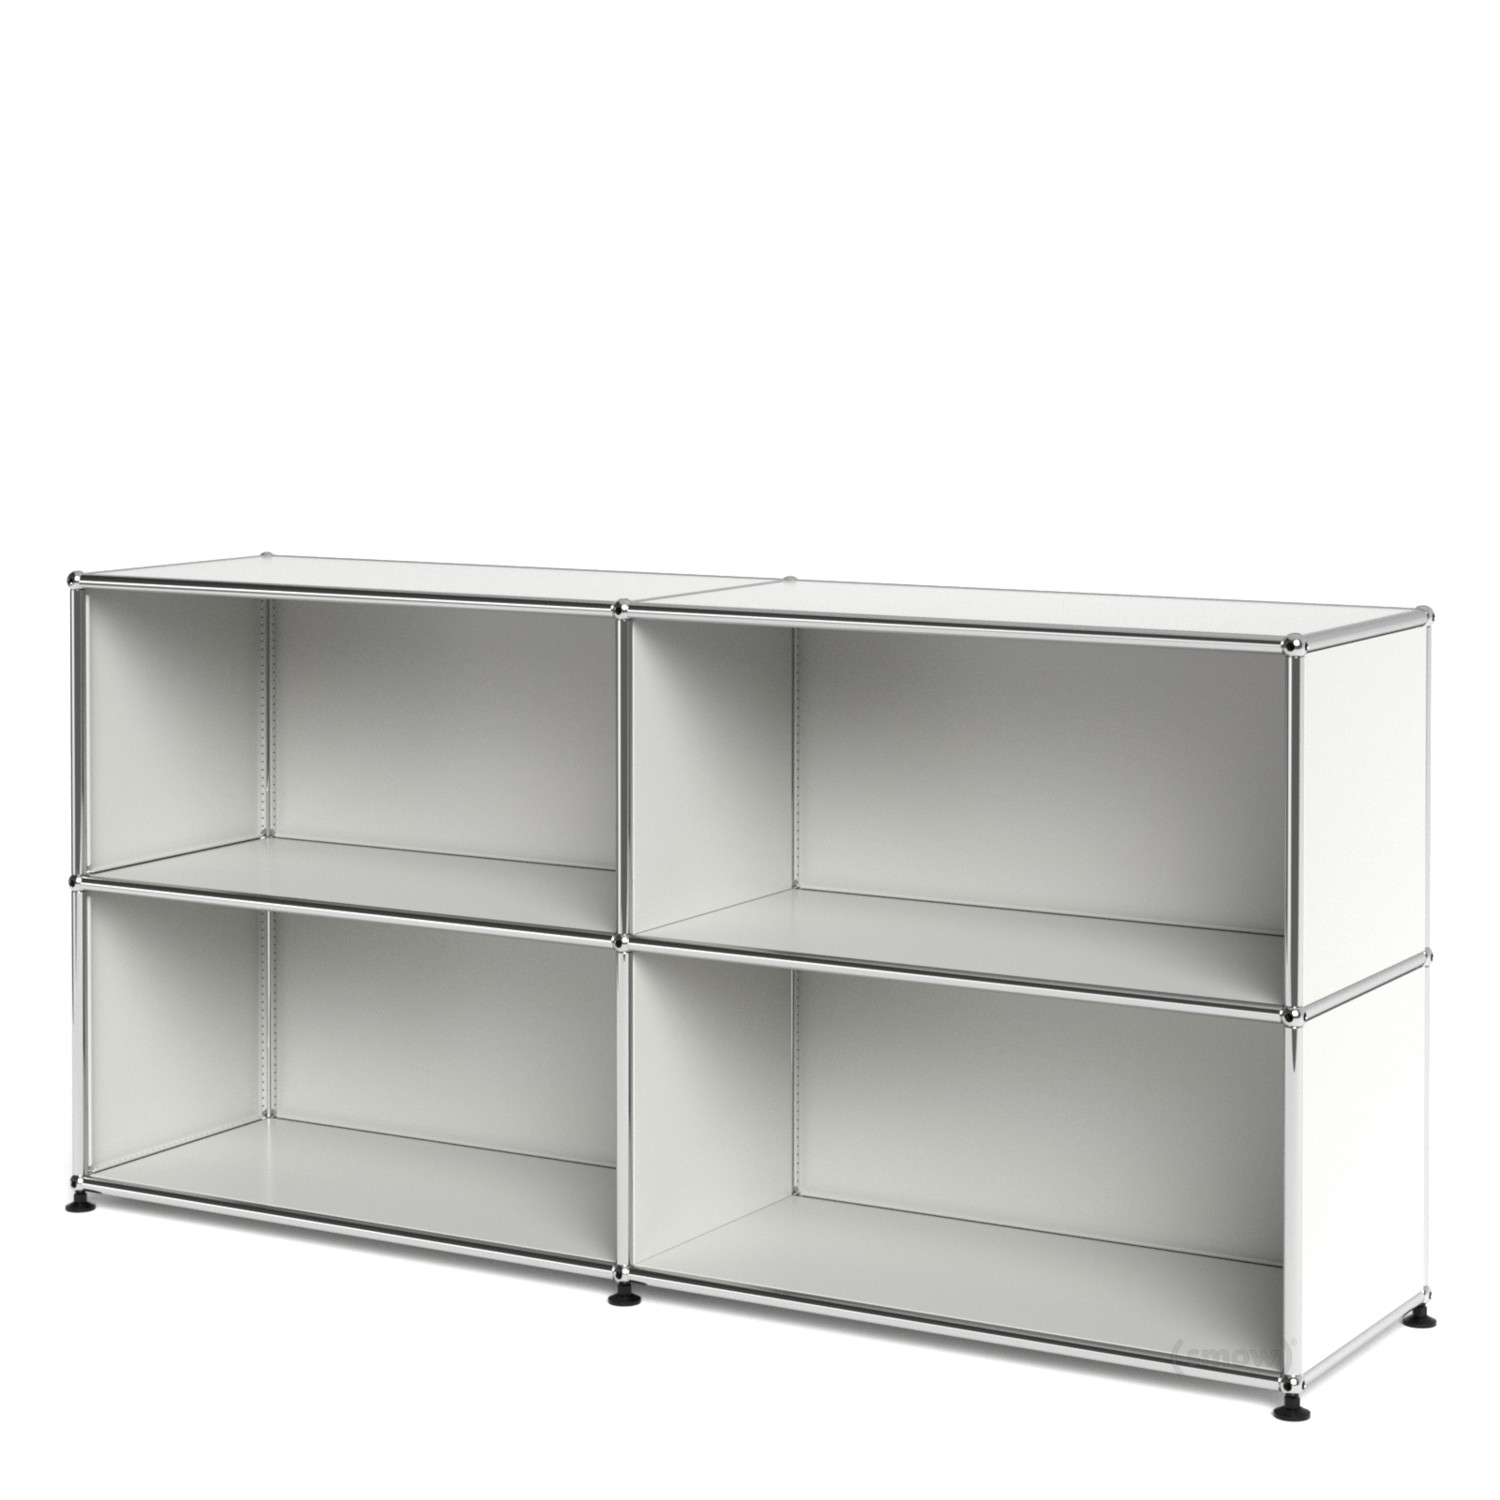 usm haller sideboard l open by fritz haller paul sch rer designer furniture by. Black Bedroom Furniture Sets. Home Design Ideas